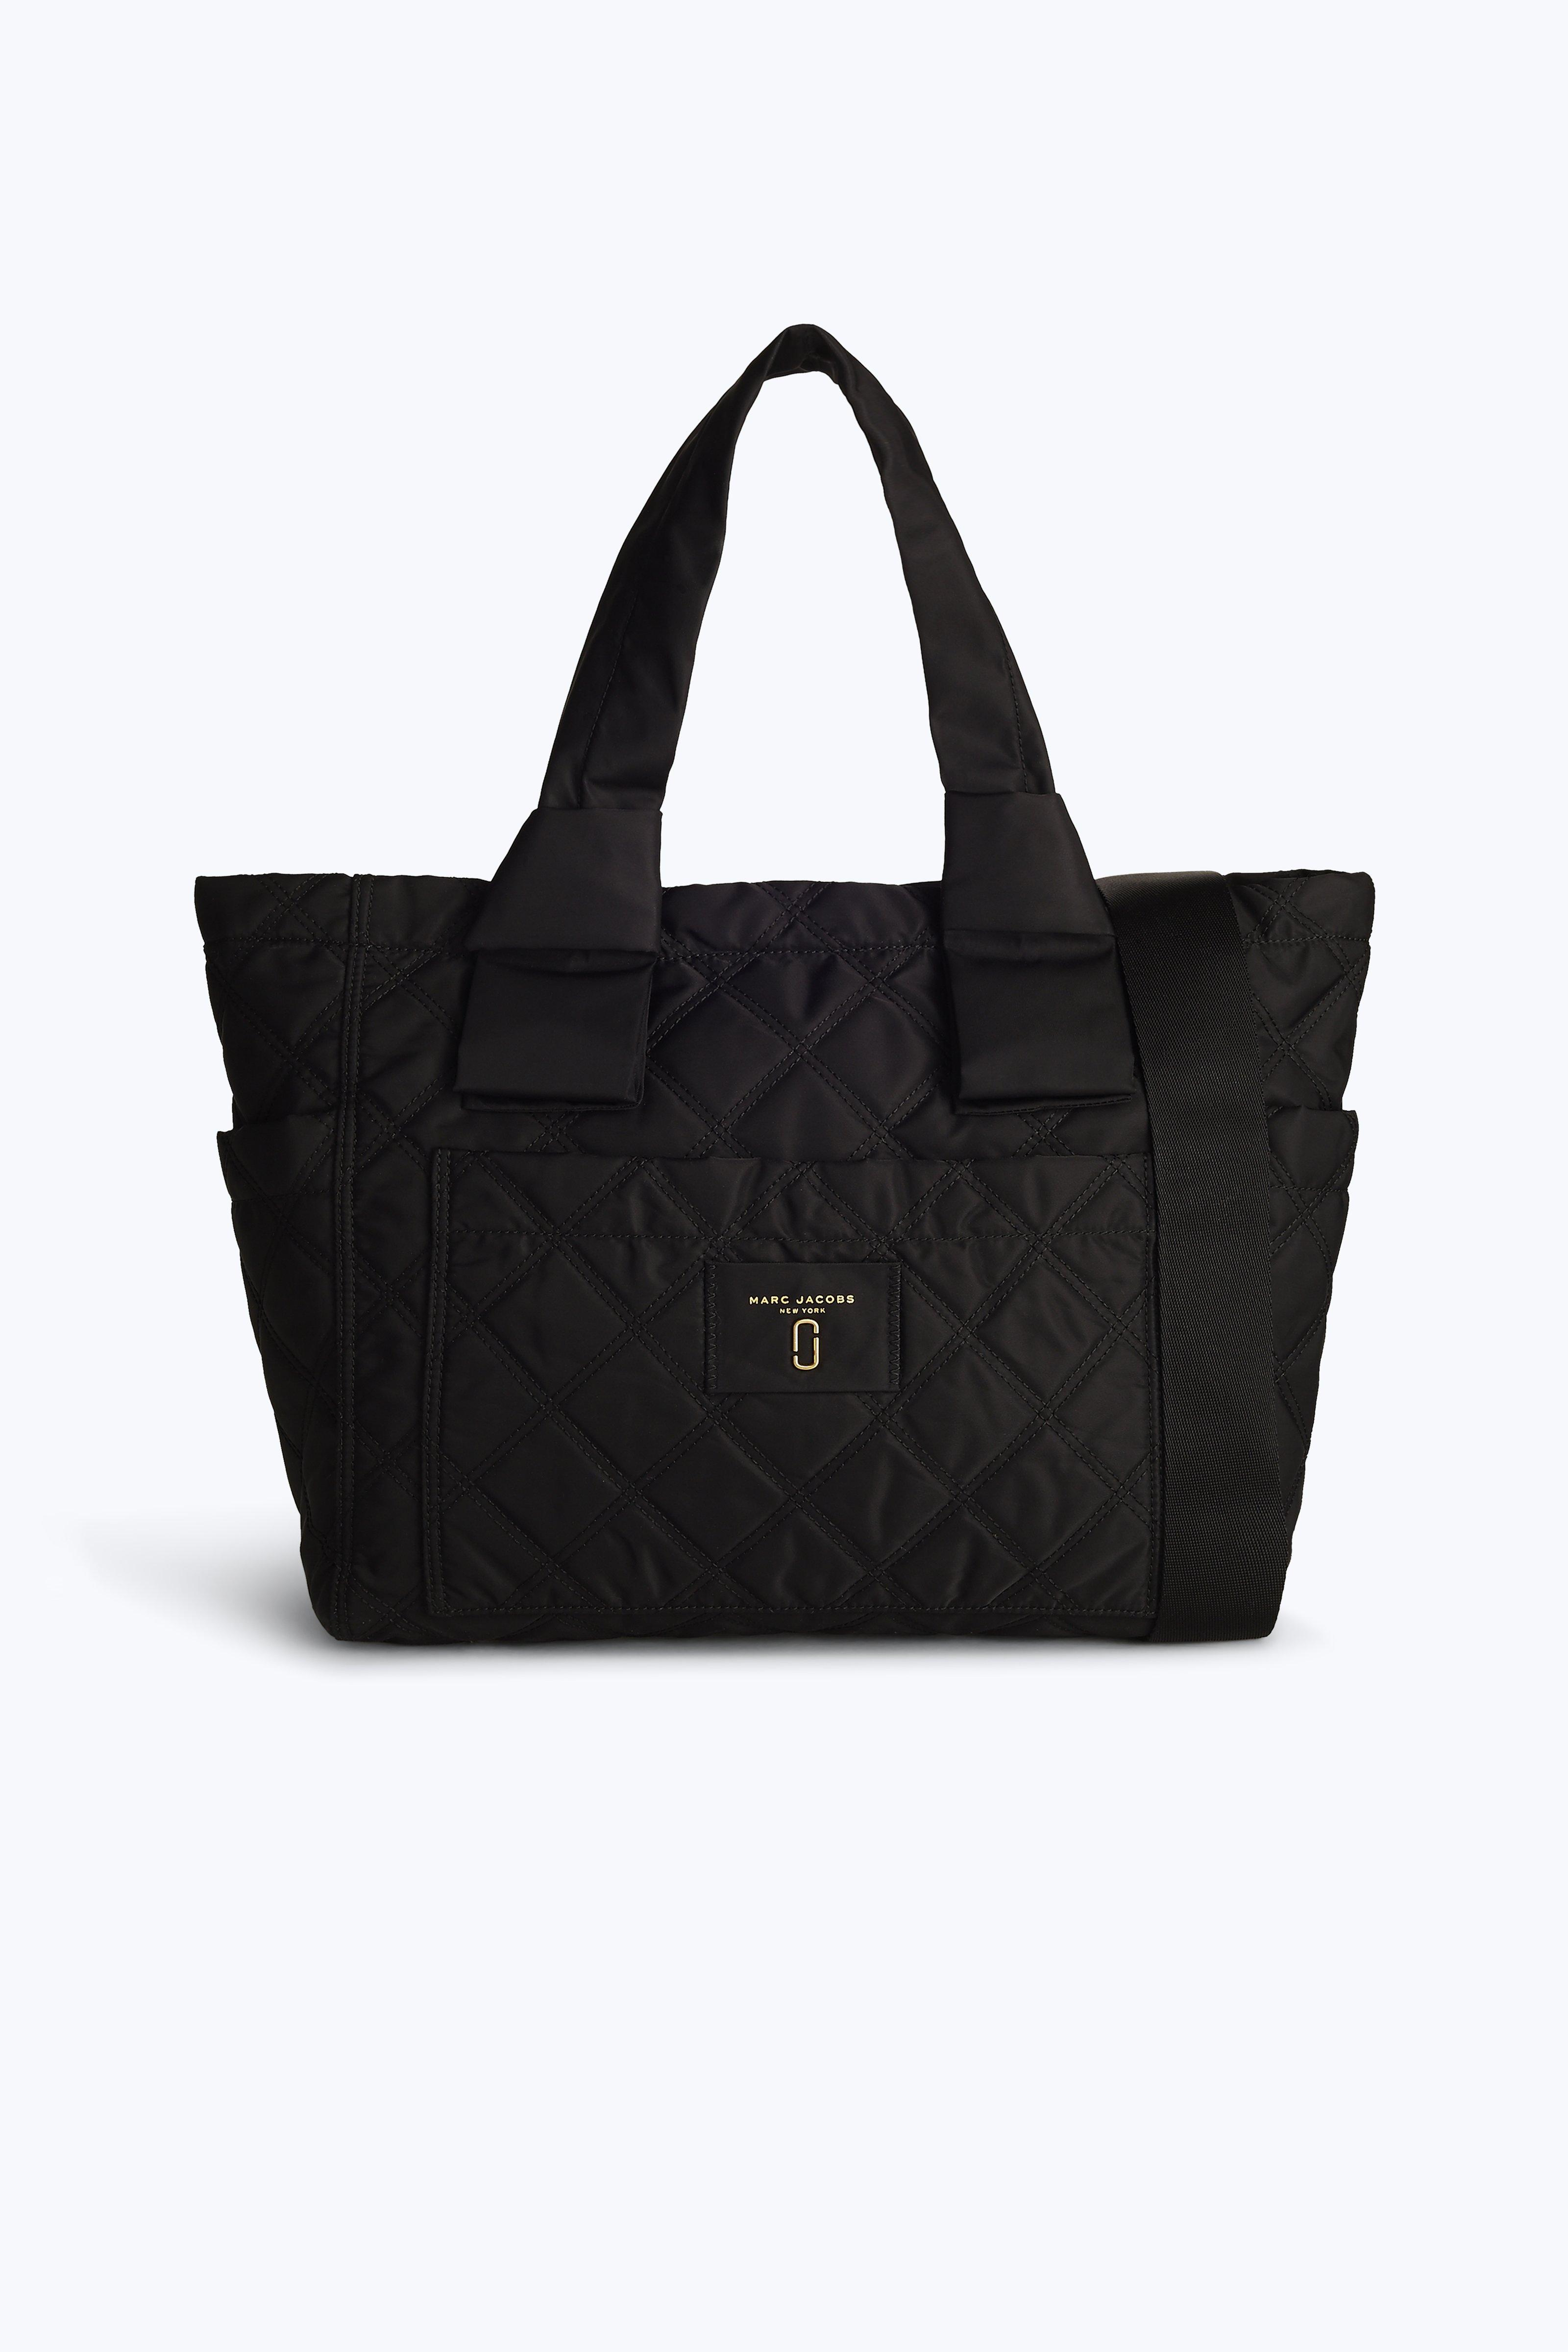 Nylon Knit Baby Bag - Marc Jacobs